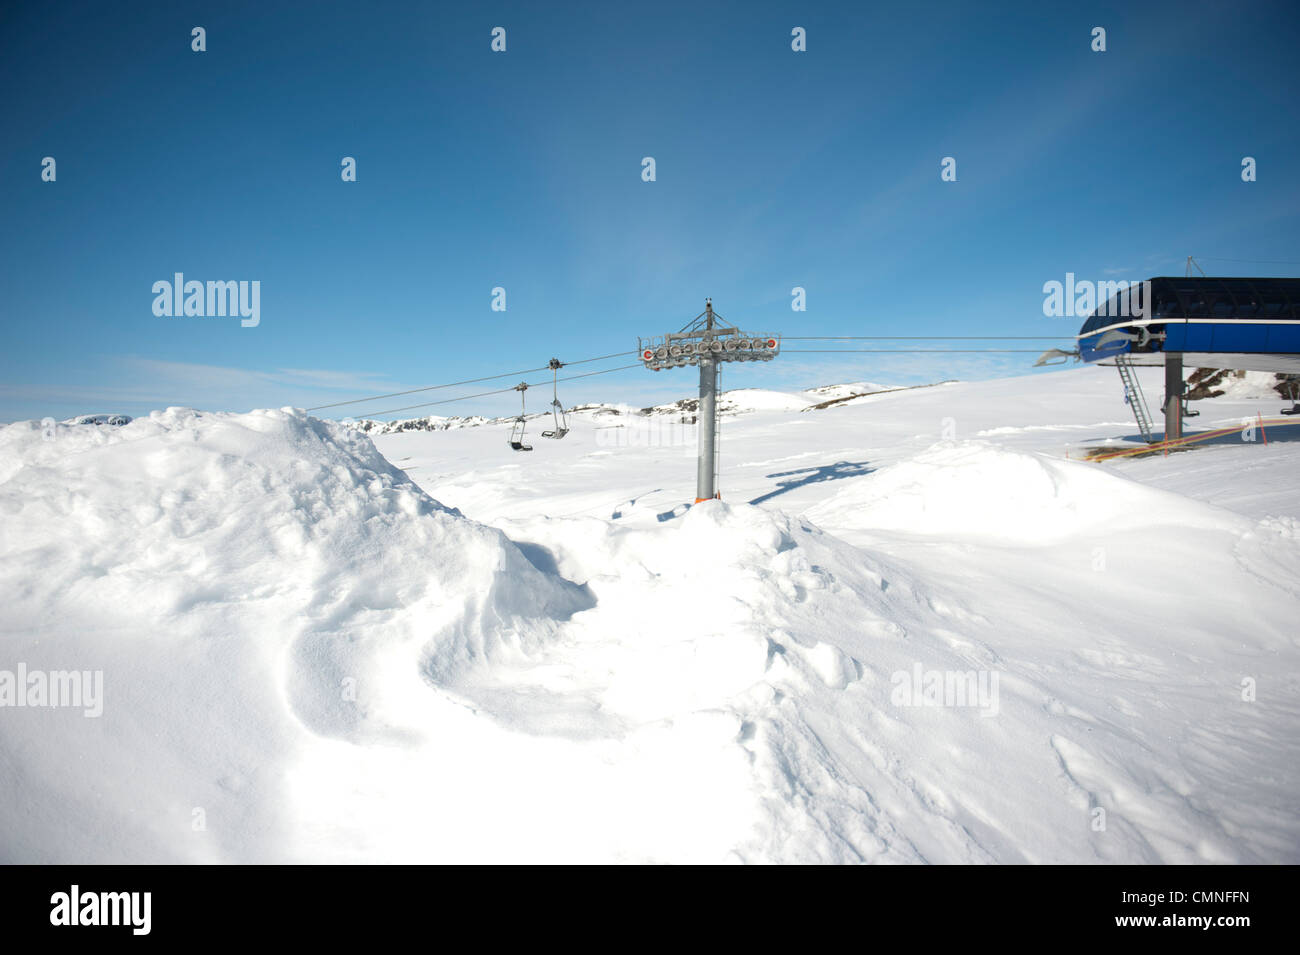 Mountain station of the ski lift linking Breive to Noose peak and Hovden, a skiing resort in southern Norway - Stock Image